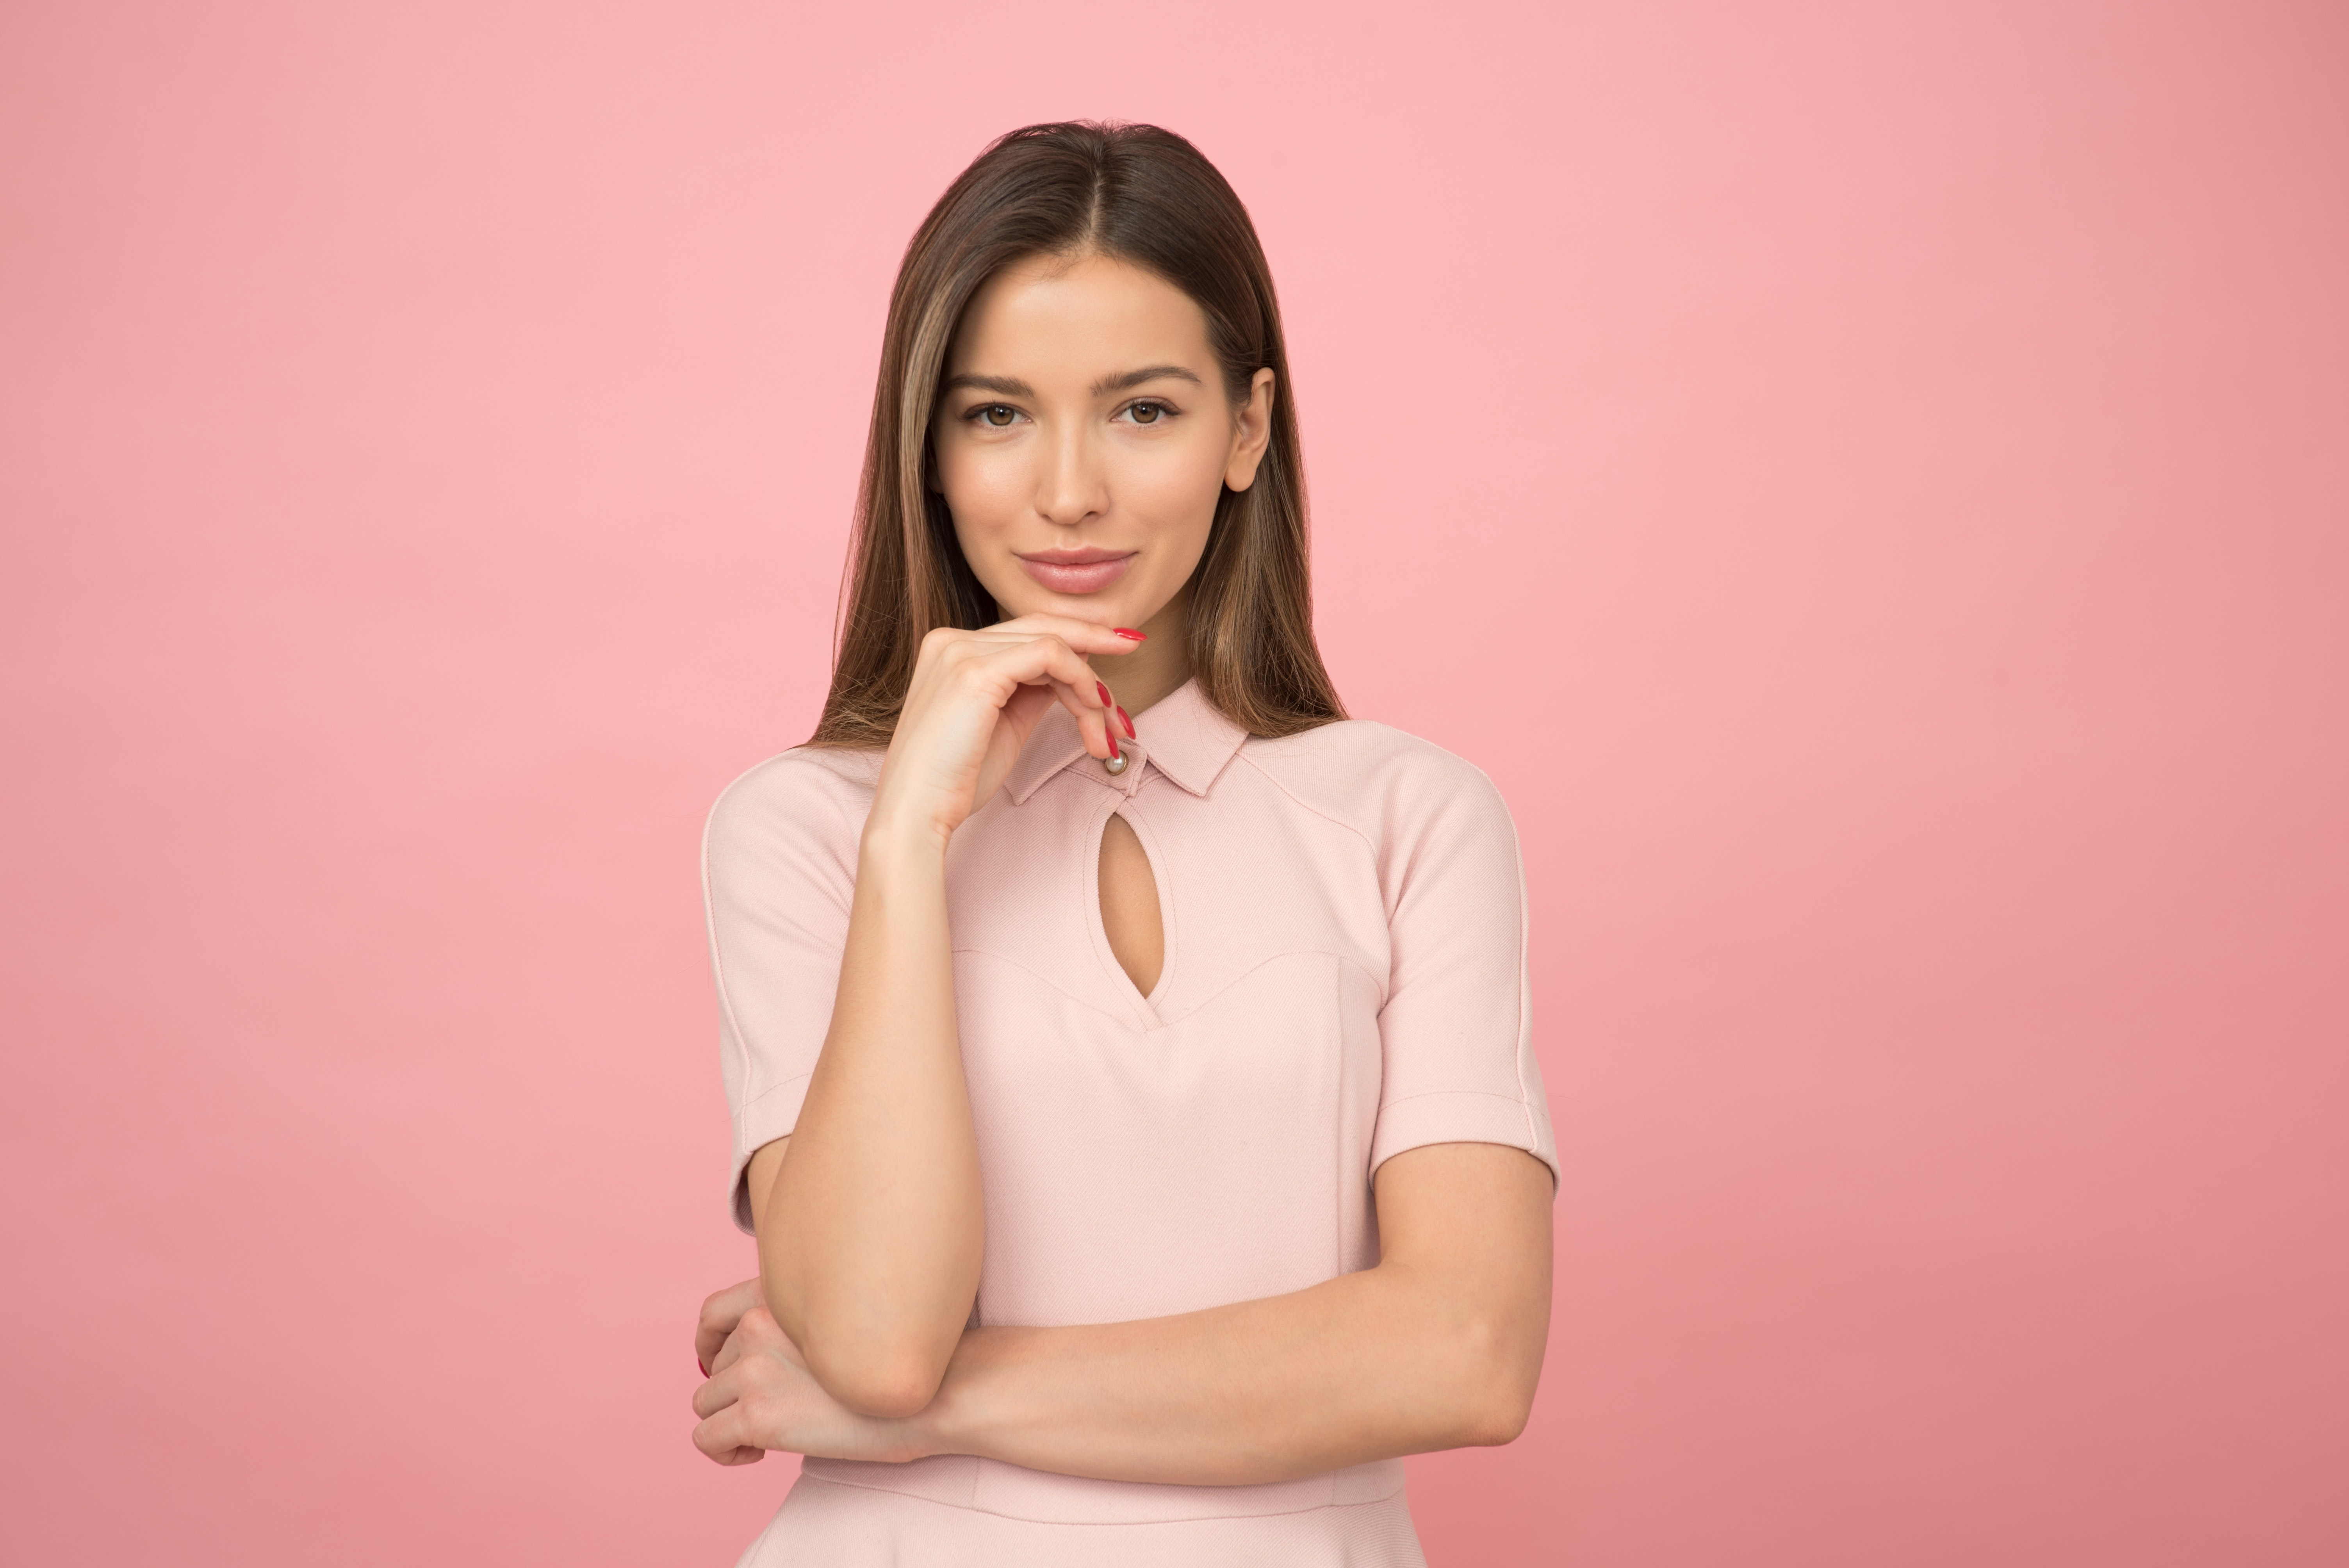 9 Entrepreneurship Tips from a Woman CEO in a Male